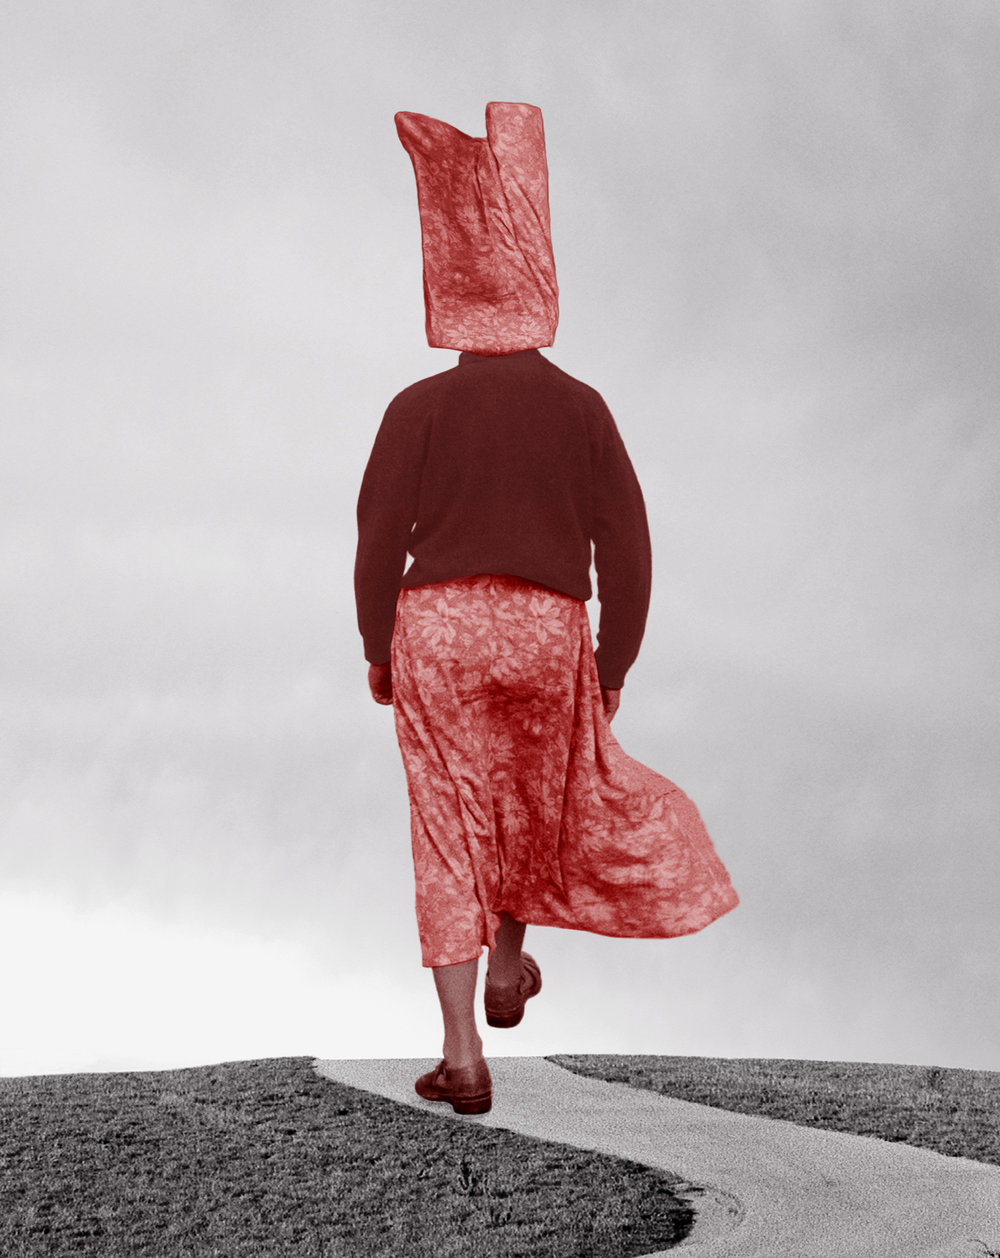 Pat Brassington,  By the Way,  2010, Pigment Print, 72 x 90 cm